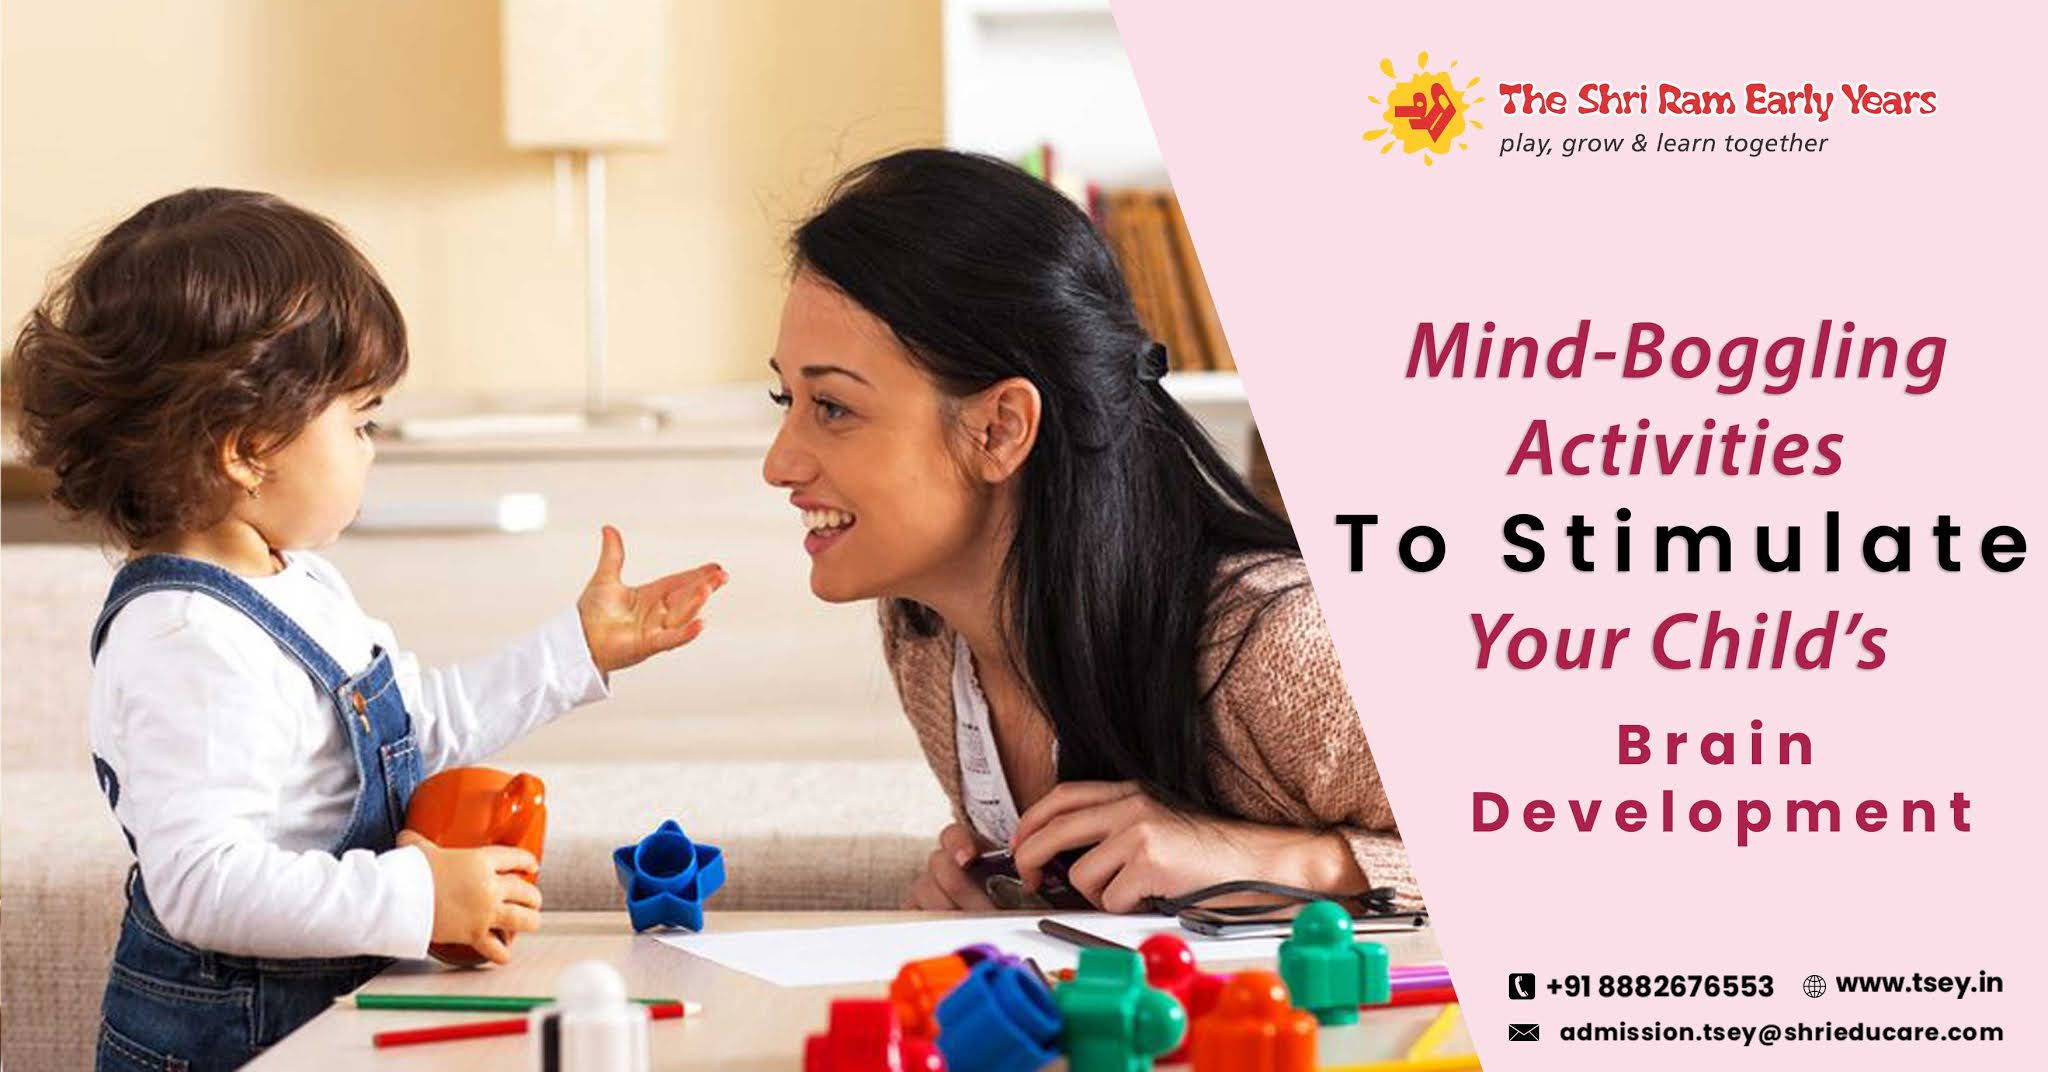 Mind-Boggling Activities To Stimulate Your Child's Brain Development